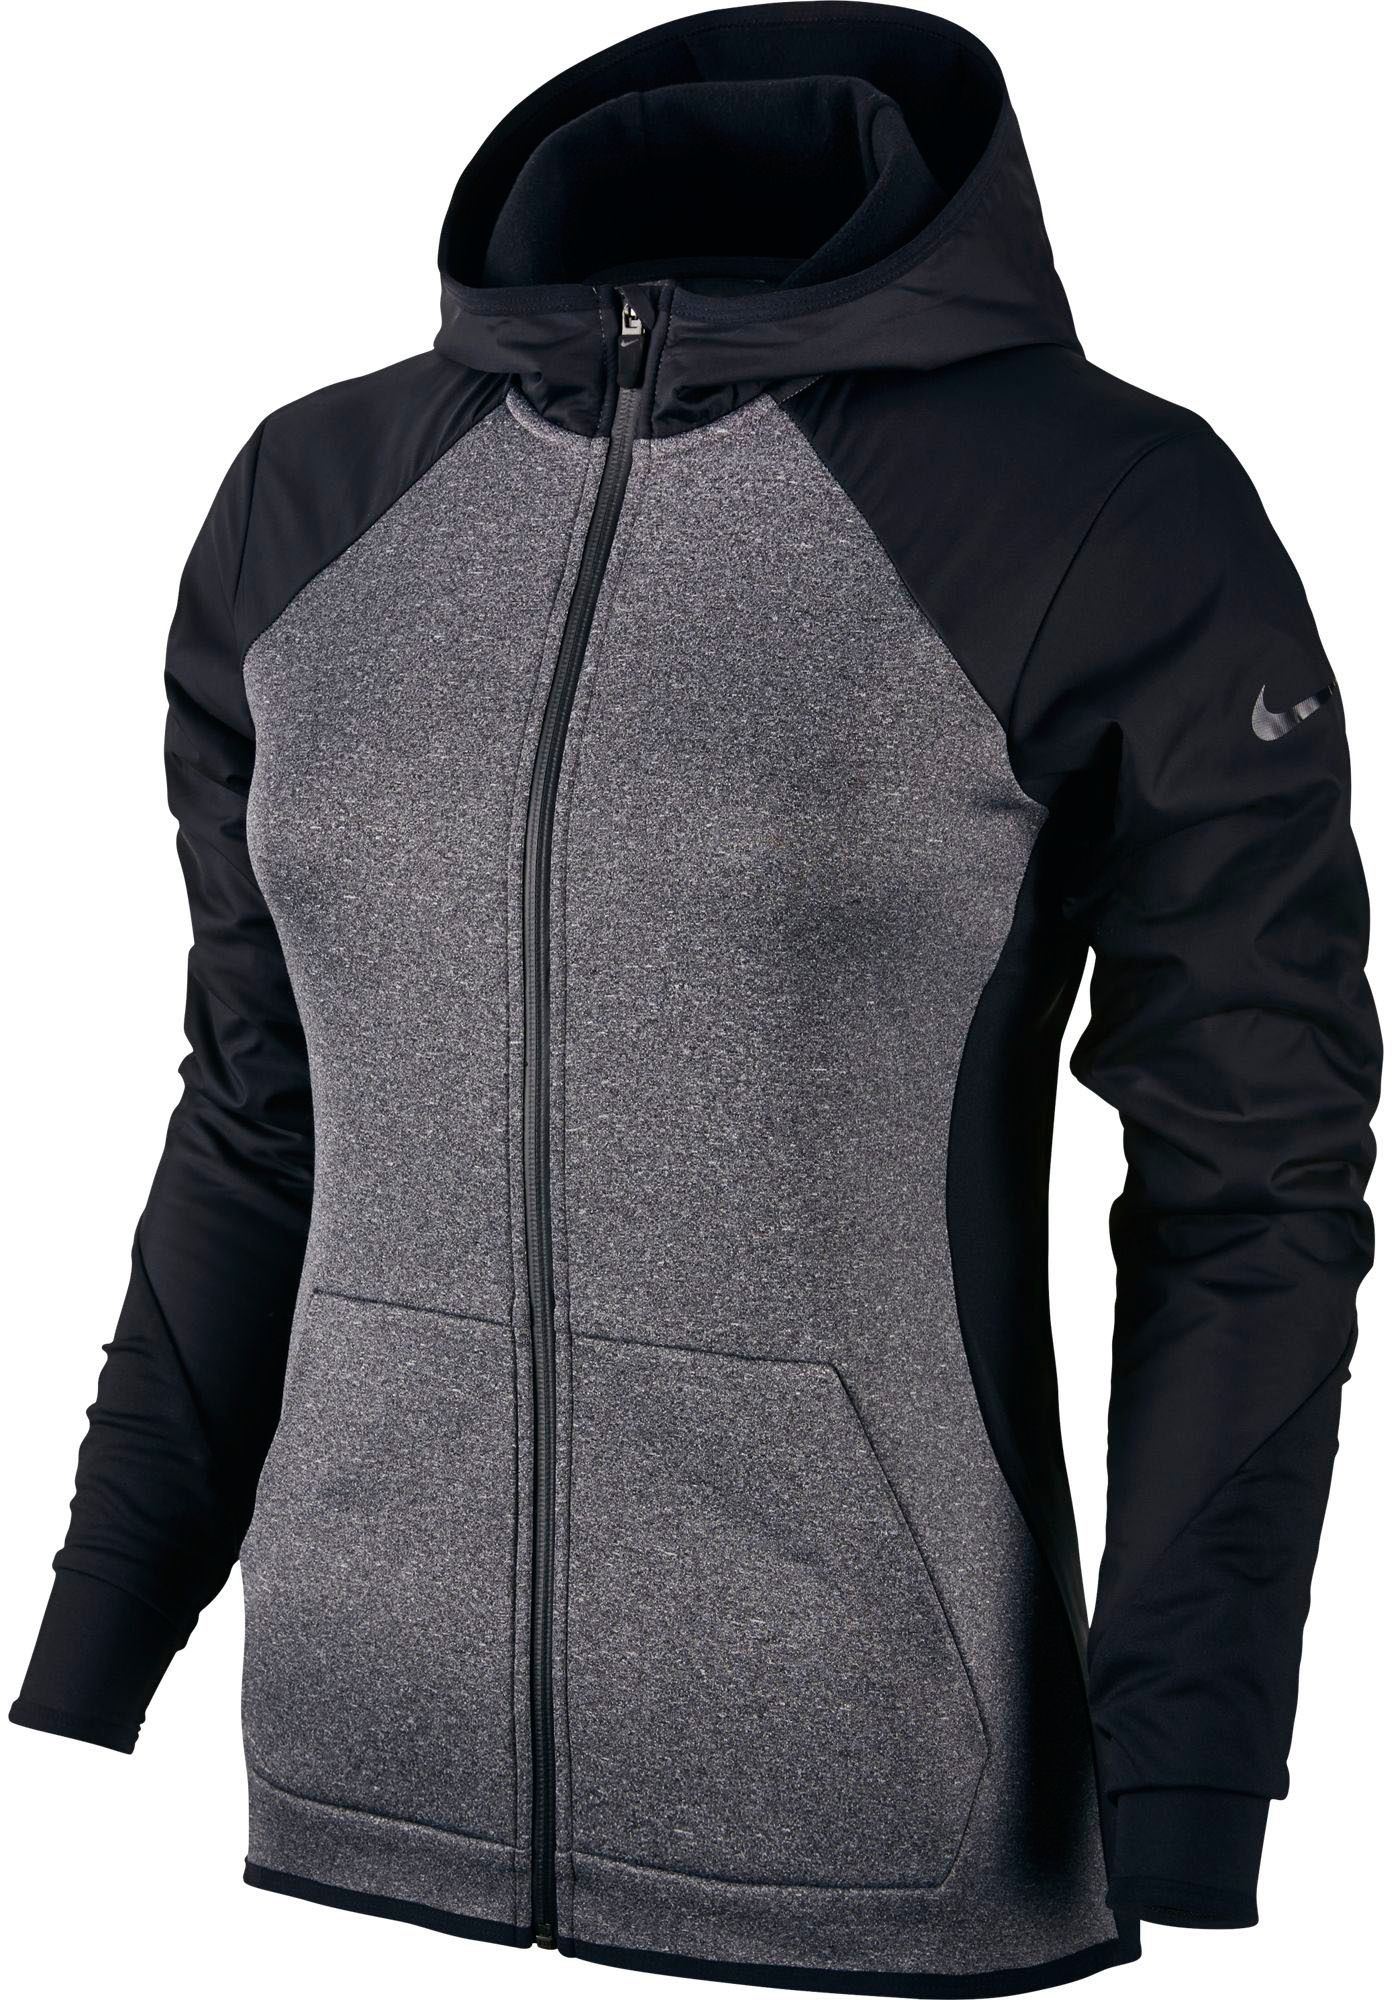 Full Zip Nike Hoodies & Sweatshirts | DICK'S Sporting Goods